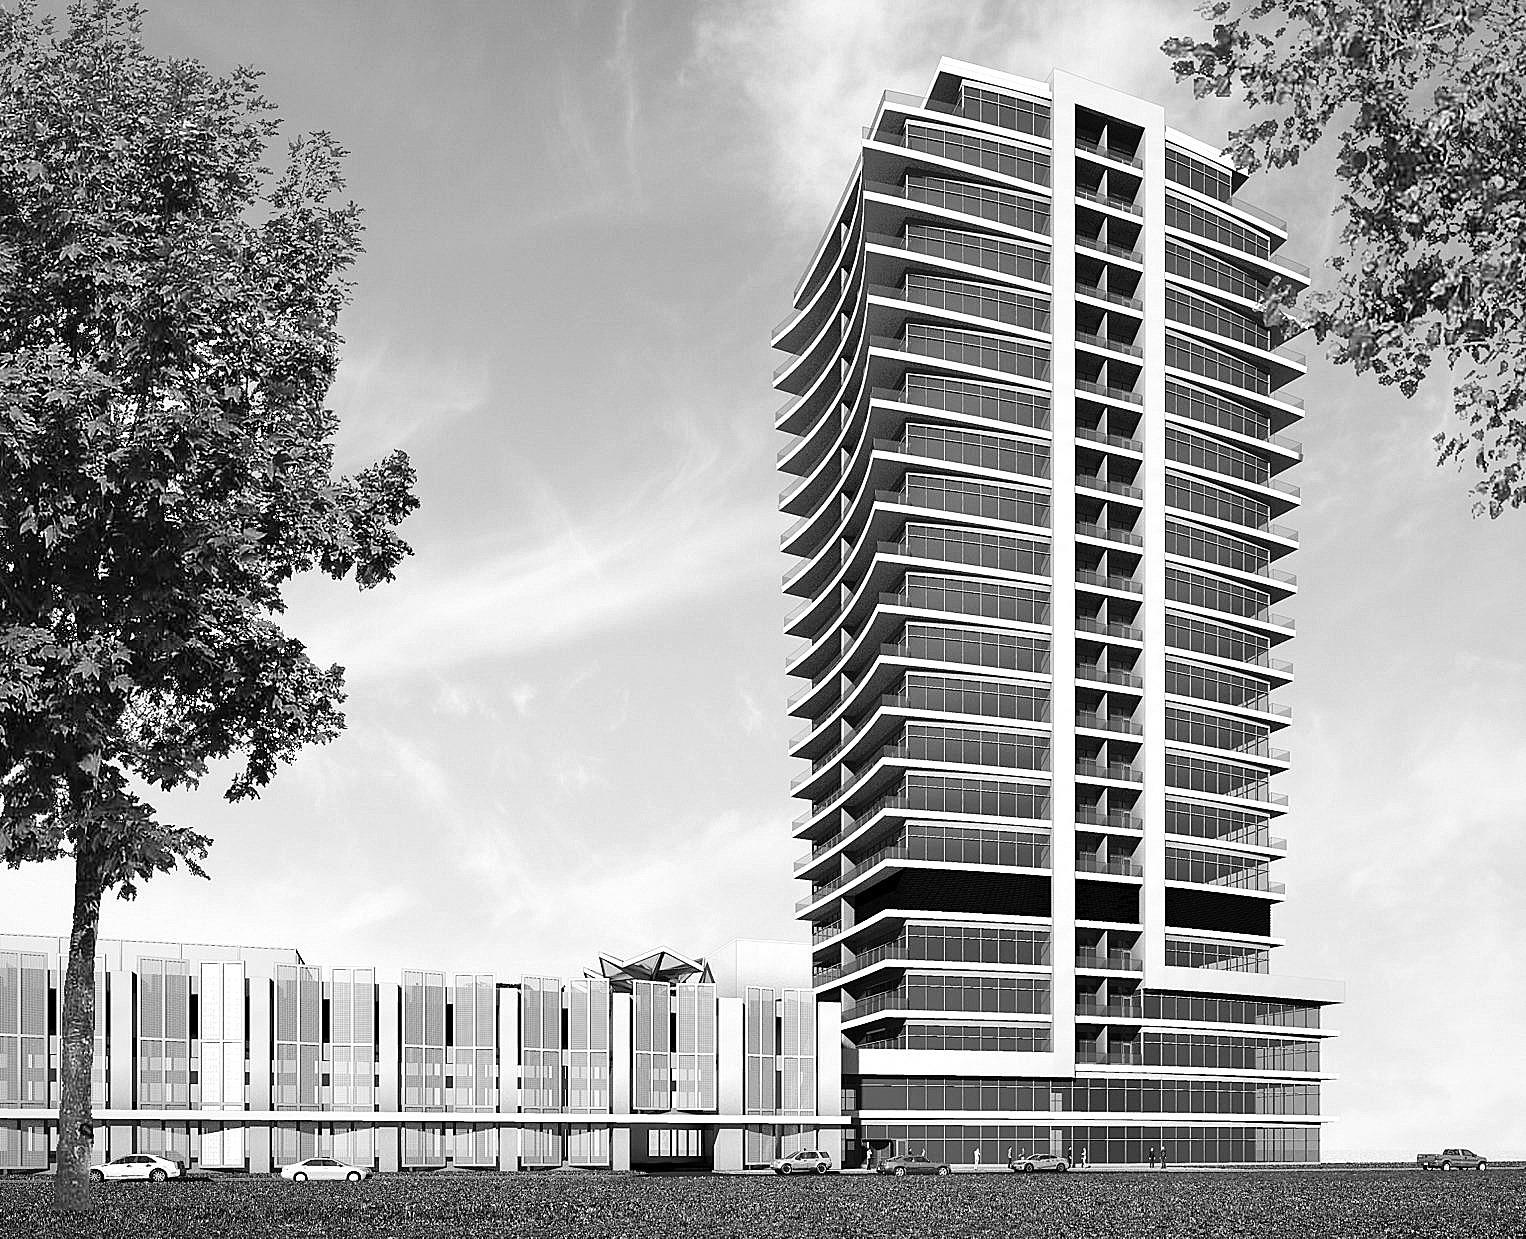 Apartments @ Queen City Landing Tower on Buffalo's Outer Harbor would feature 197 luxury units of up to 1,400 square feet. (Rendering by Trautman Associates)